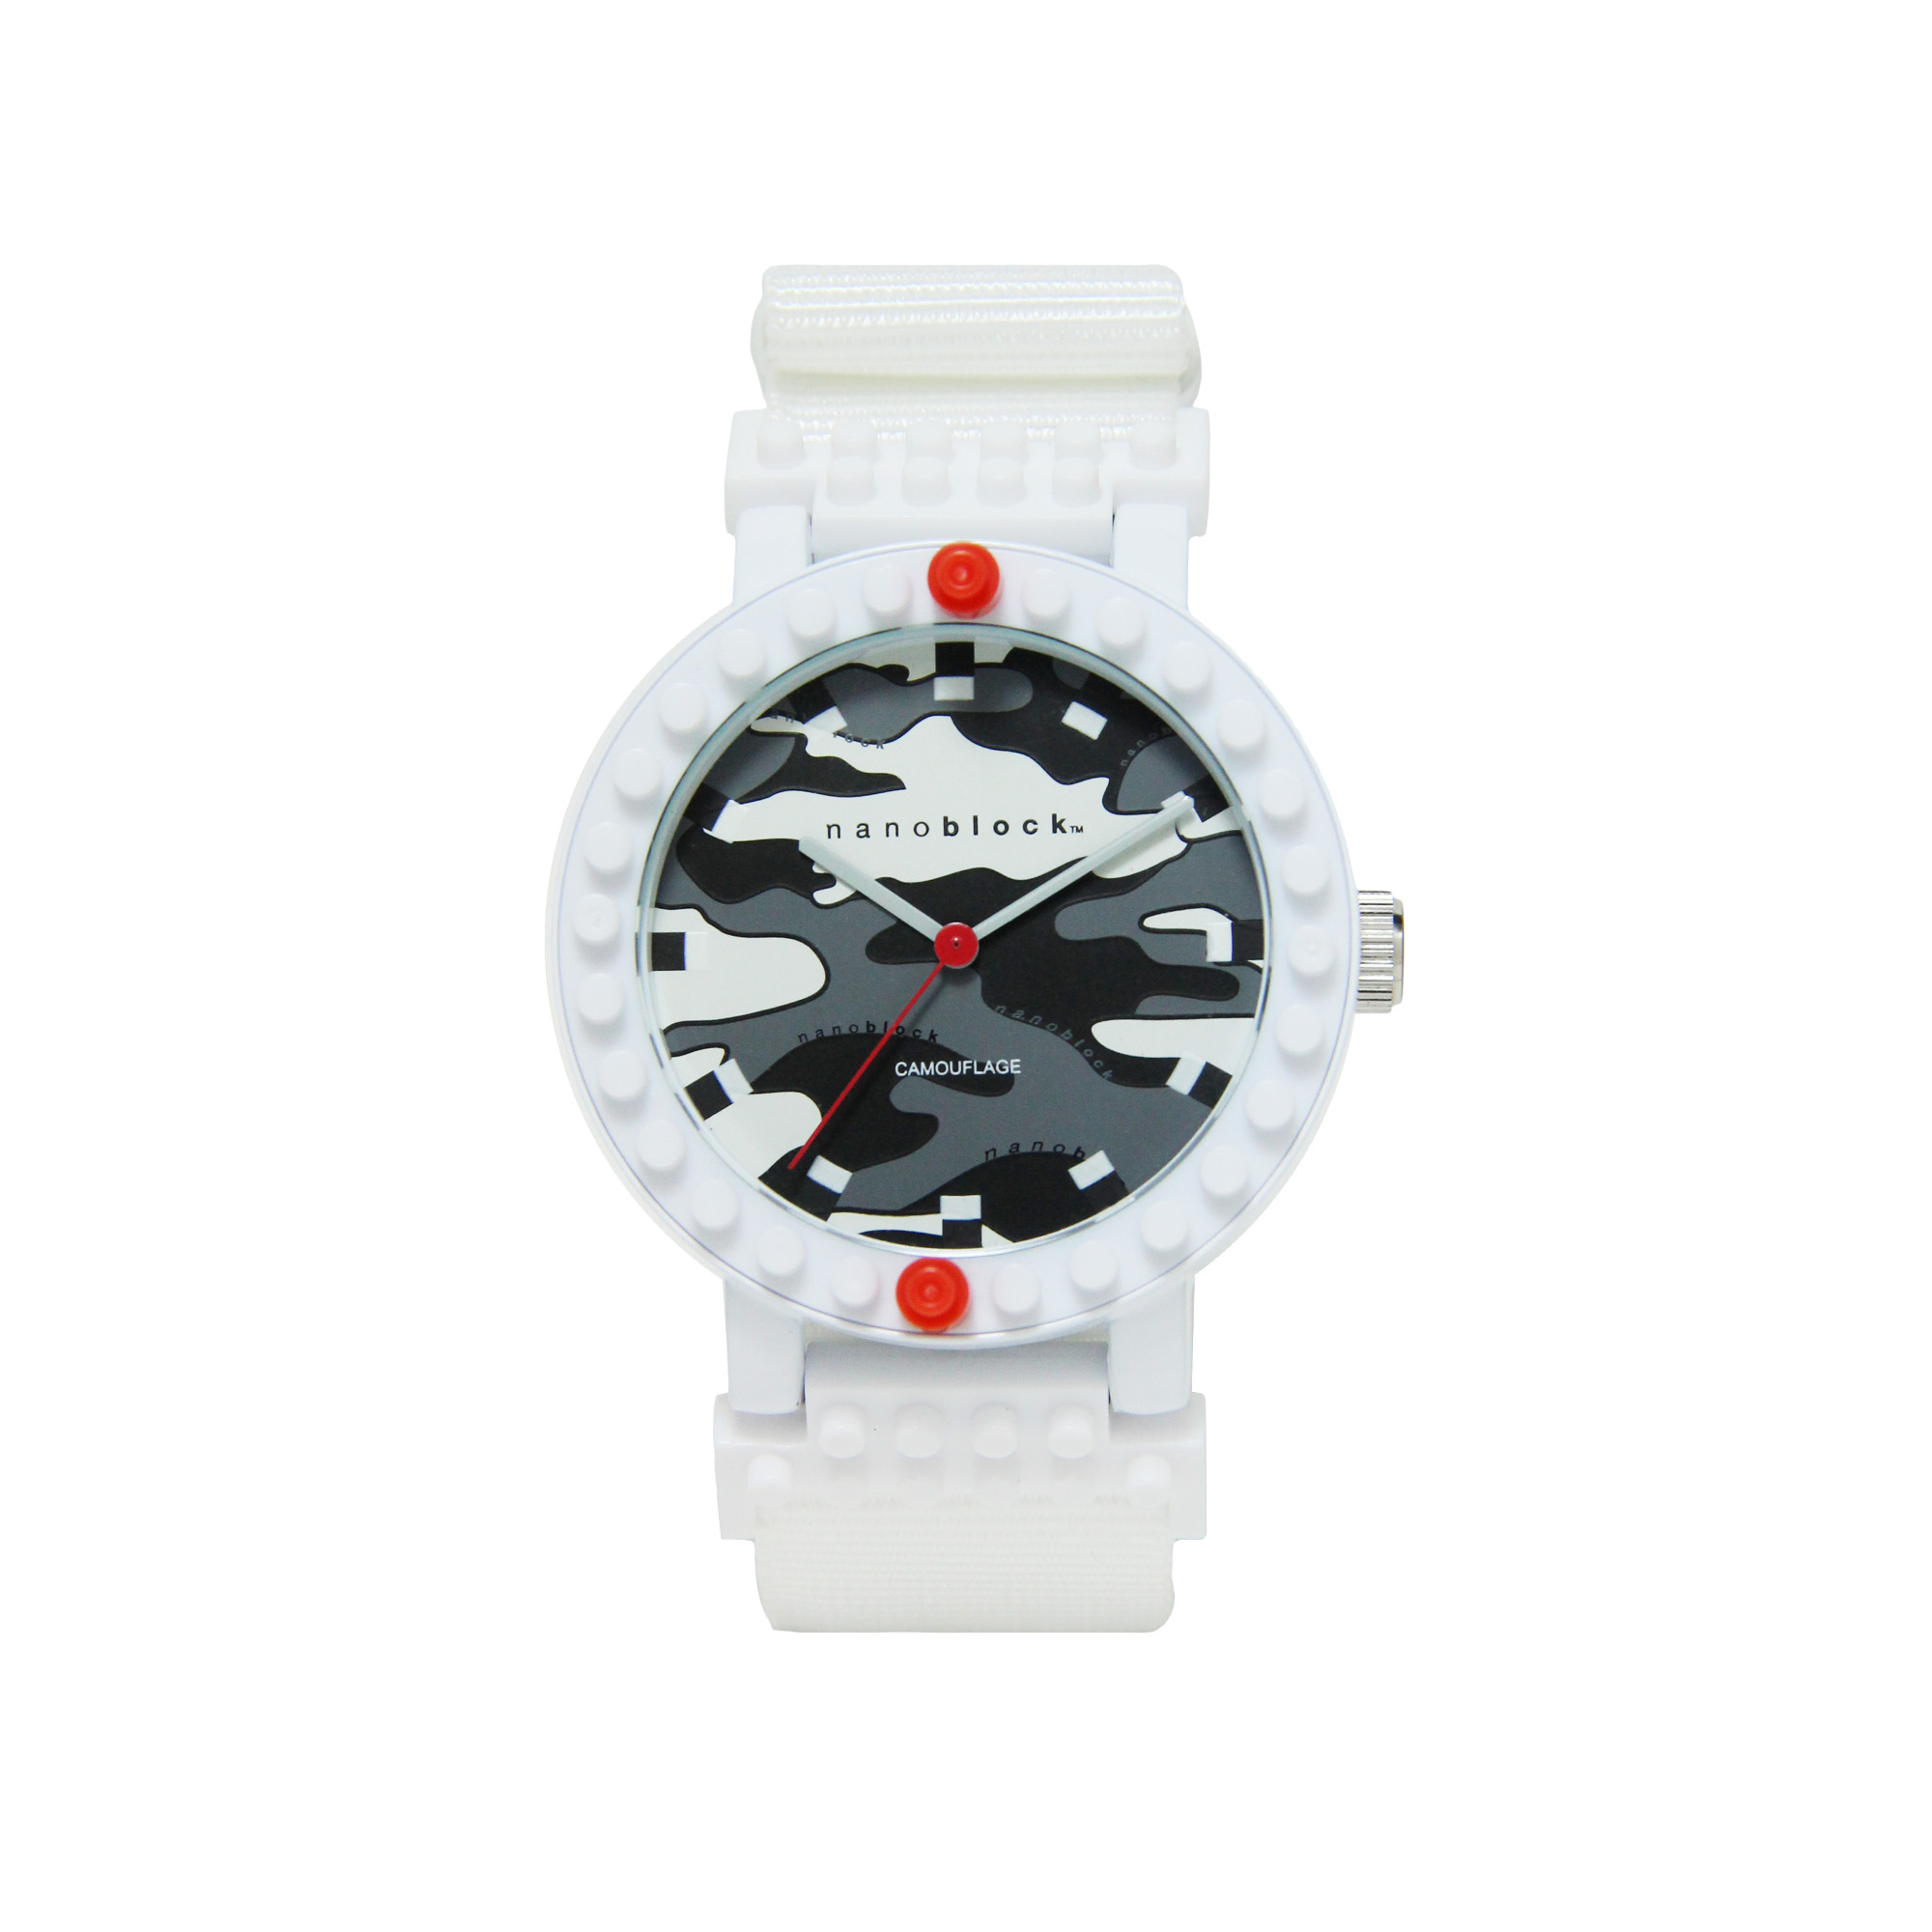 Nanoblocktime All Rounder Camo Watch, White by Beta Enteprises Inc.